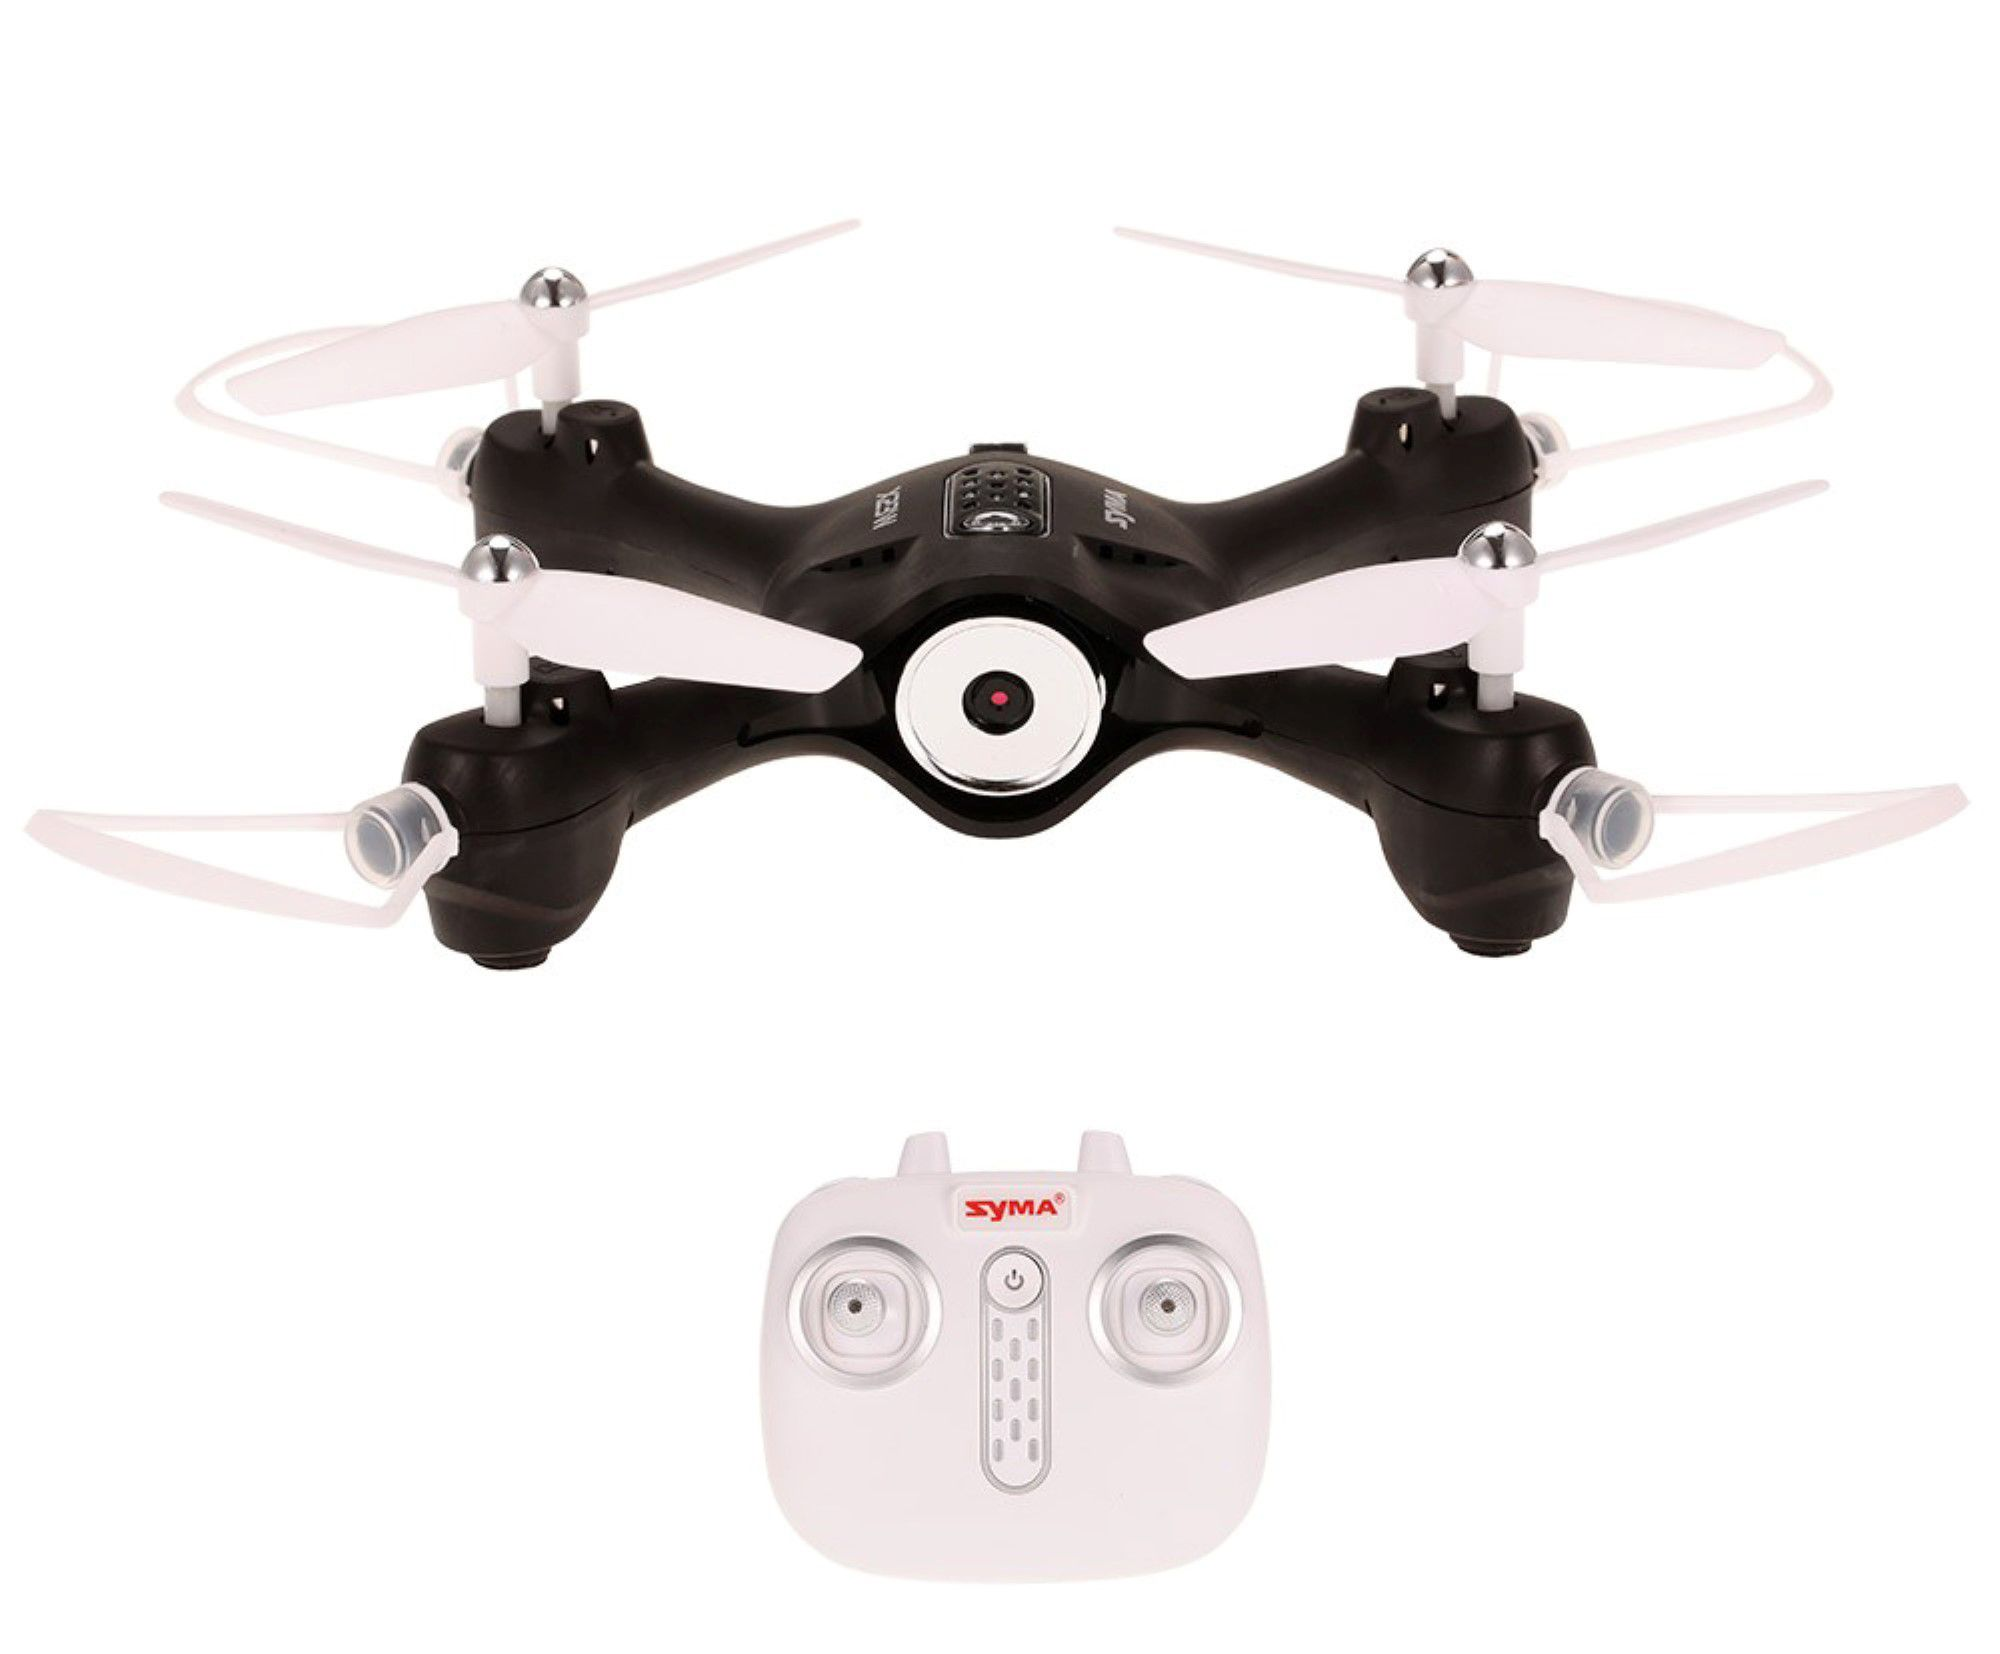 Toyhouse Syma X23 Drone Headless Mode Altitude Hold G-sensor Quadcopter,  Black